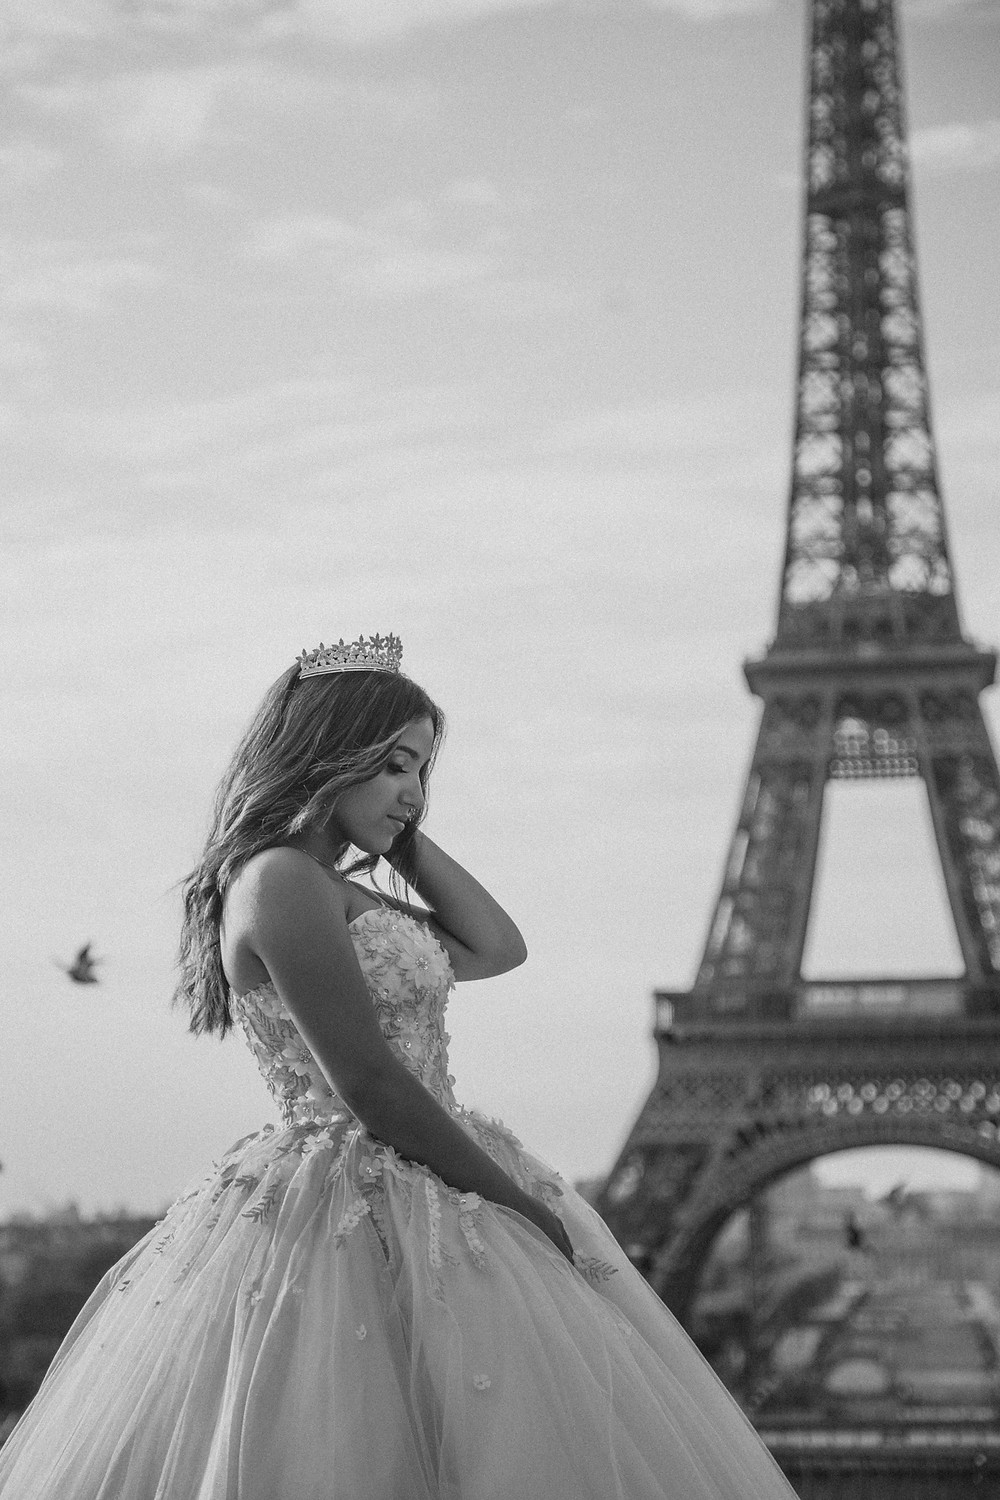 paris quinceanera black and white photo eiffel tower